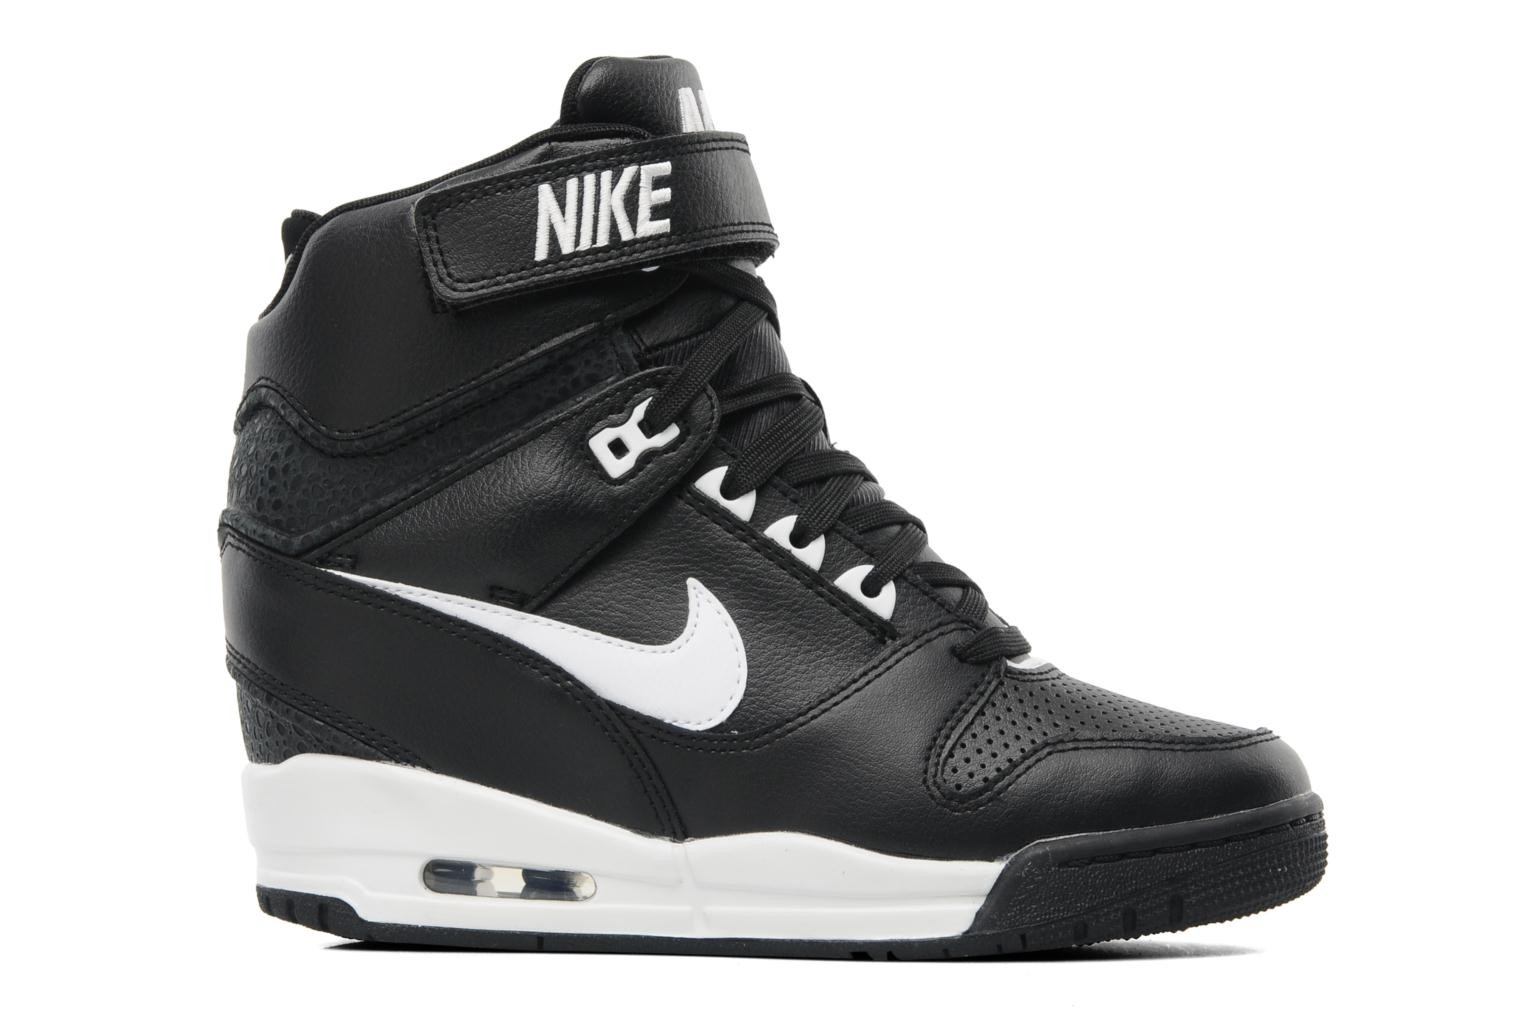 photos officielles 9f8e8 1c646 Air Nike Hi Sky Revolution Noir Basket htrdQs